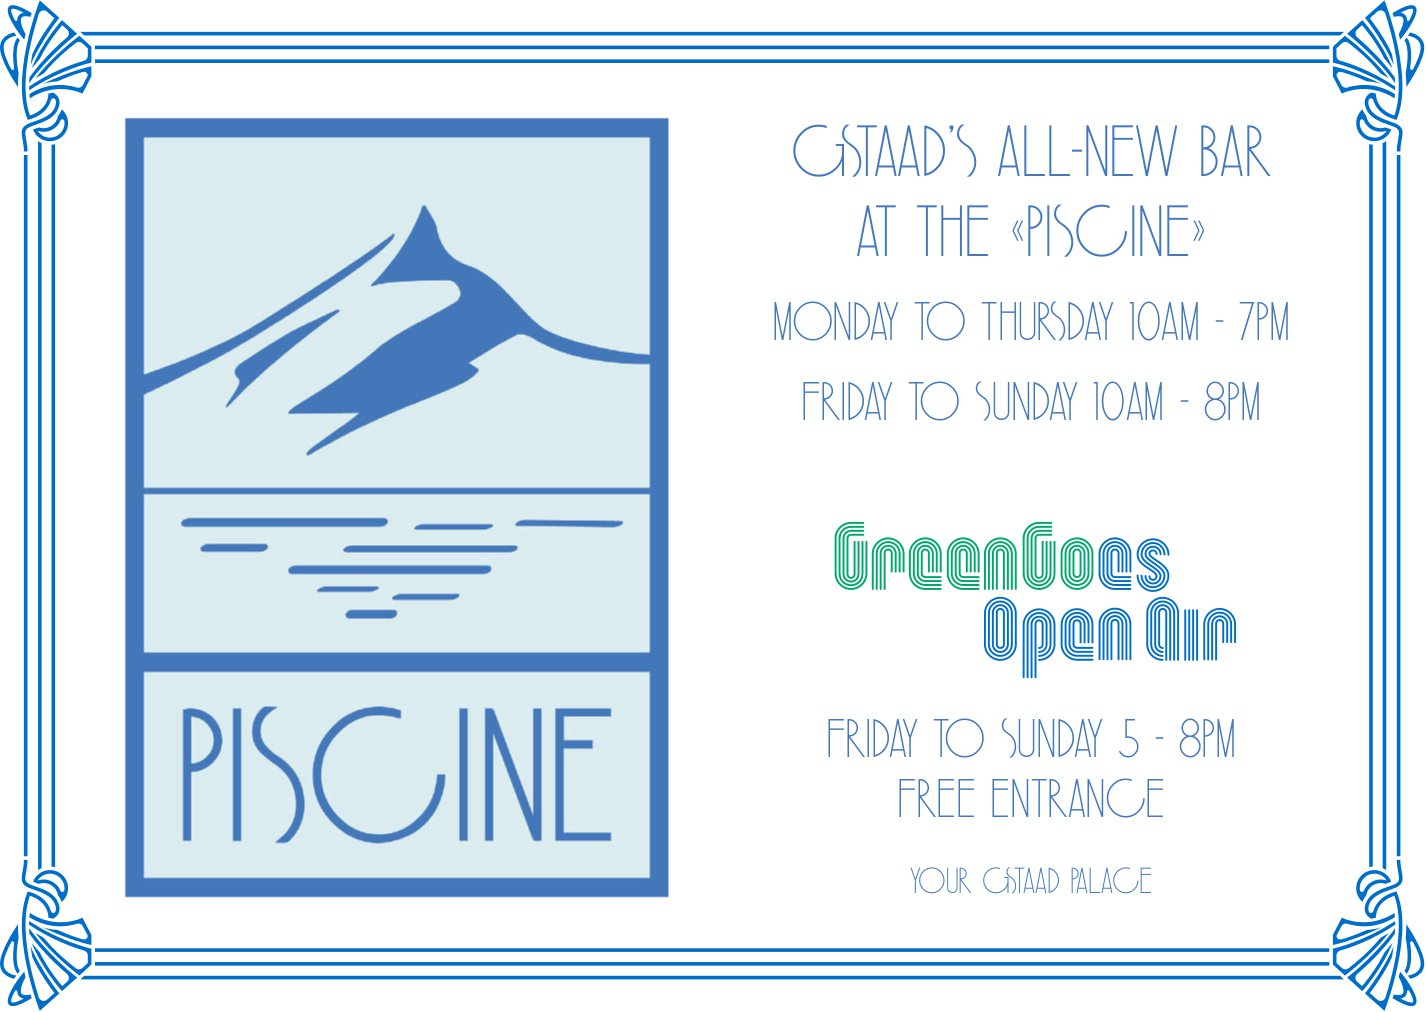 Green Goes Open Air, Gstaad - Gstaad's all-new Bar at the «Piscine»